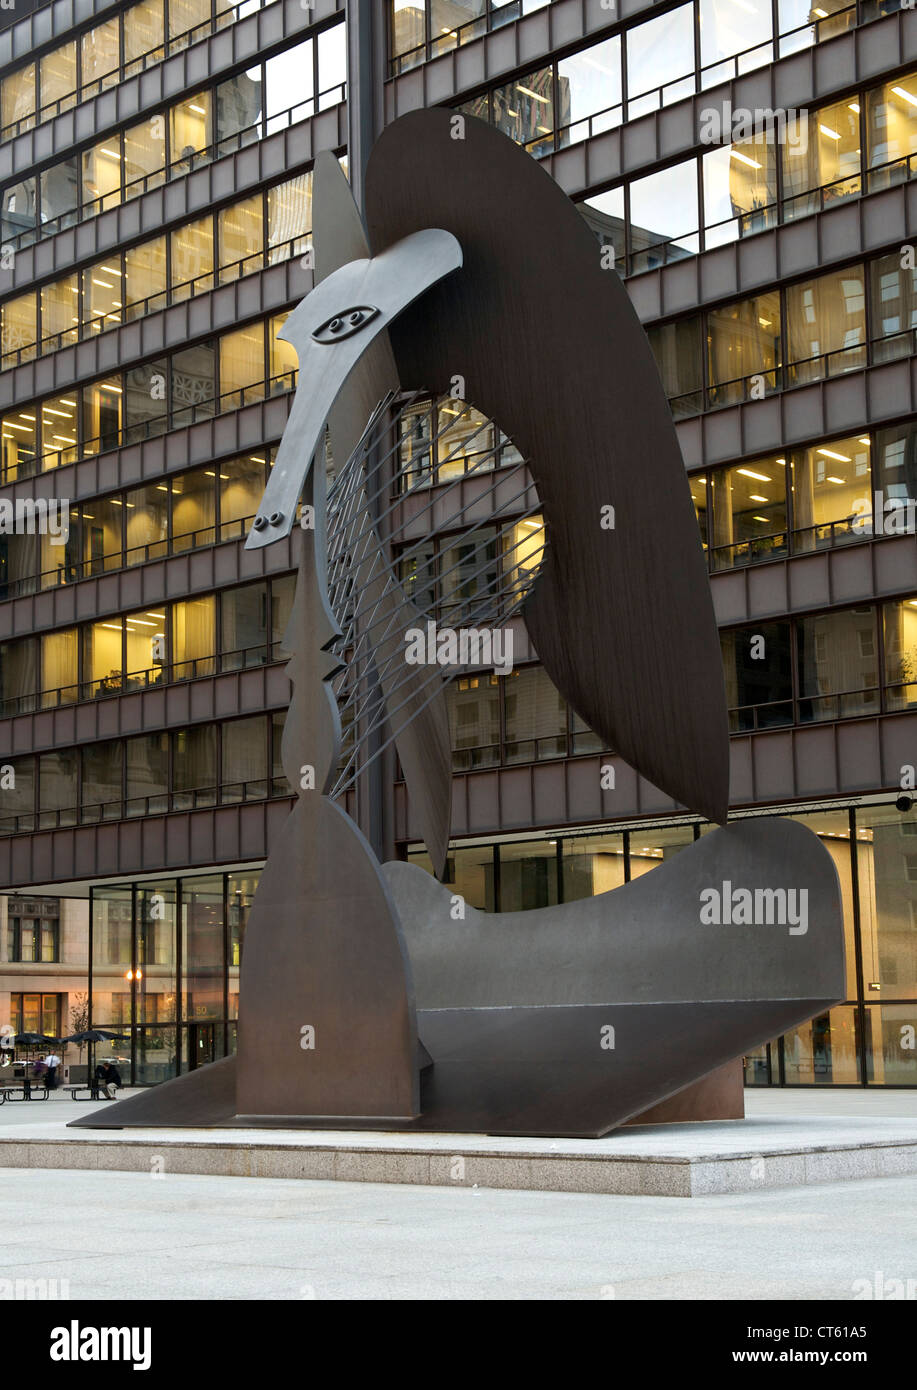 Sculpture in the plaza of the Richard J Daley Centre in Chicago, Illinois, USA. - Stock Image